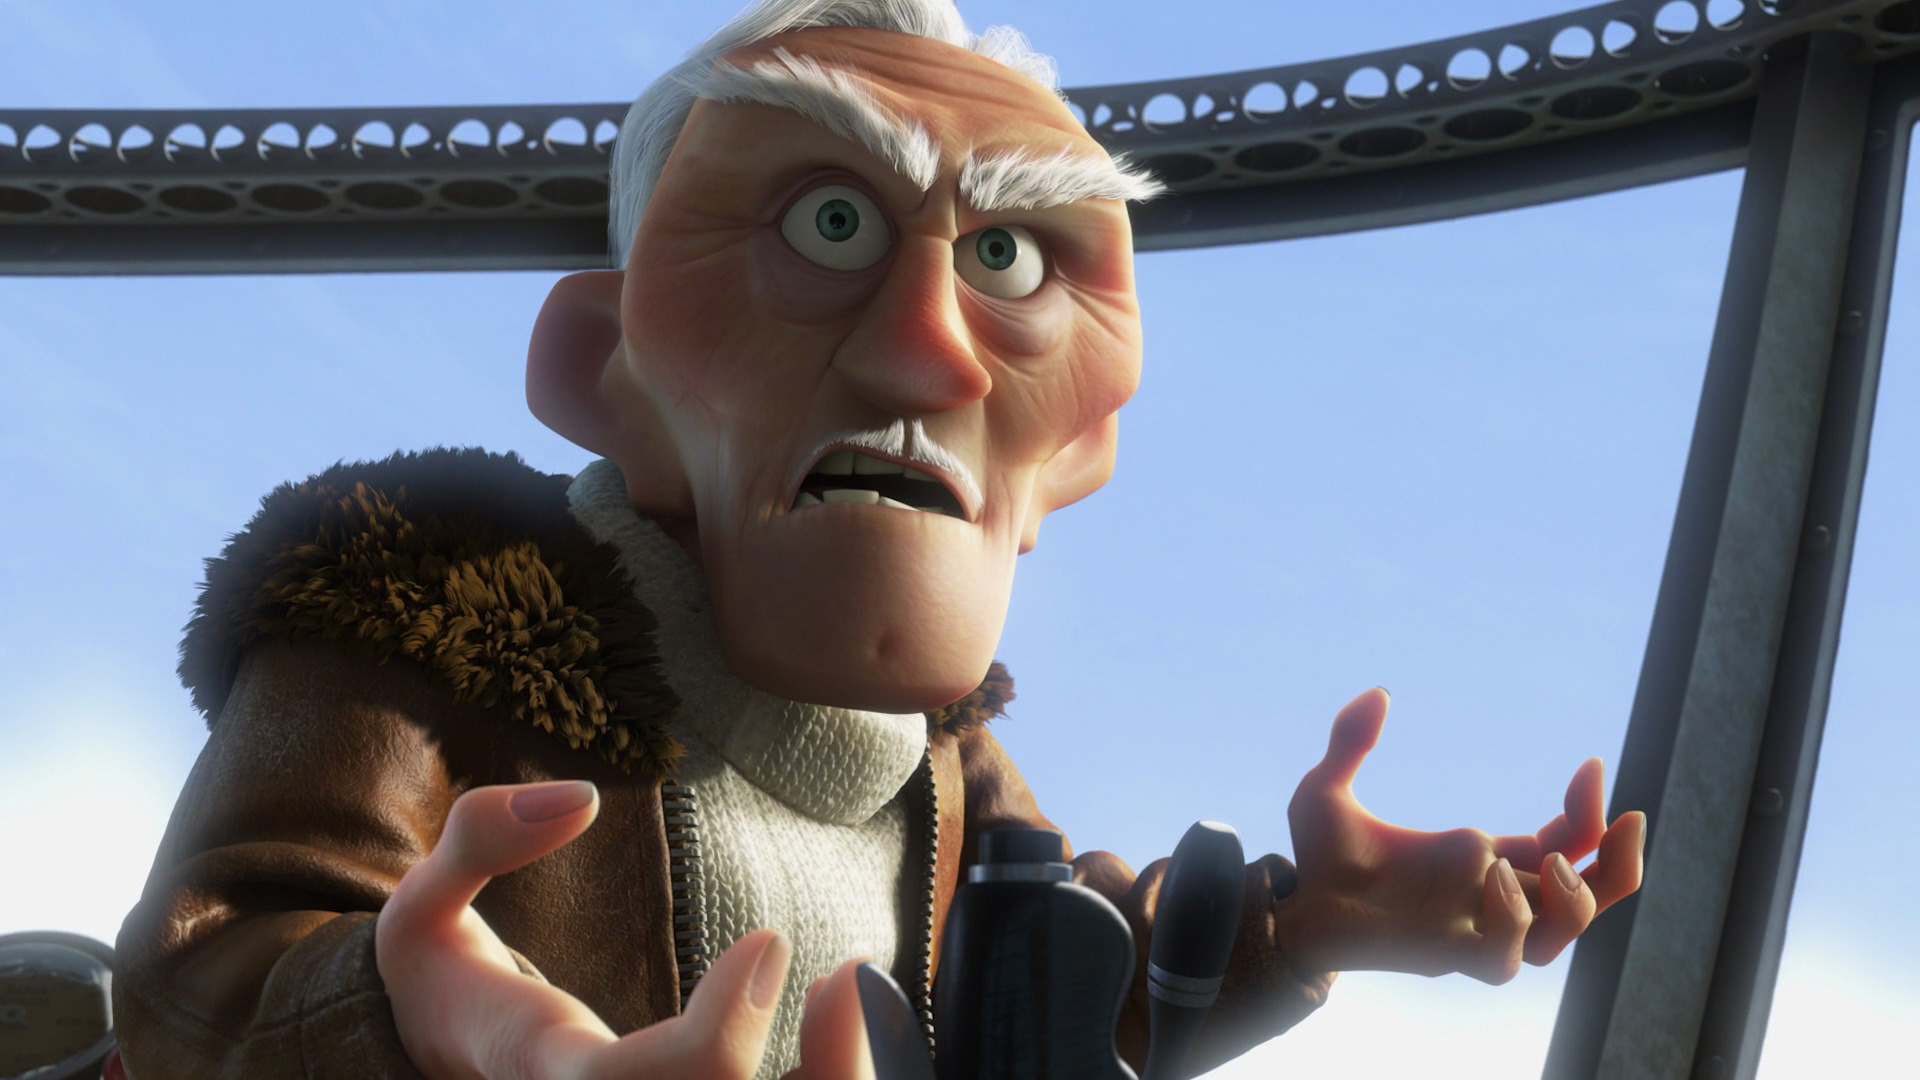 skeleton chair wake me up covers bournemouth charles muntz character from pixar planet fr